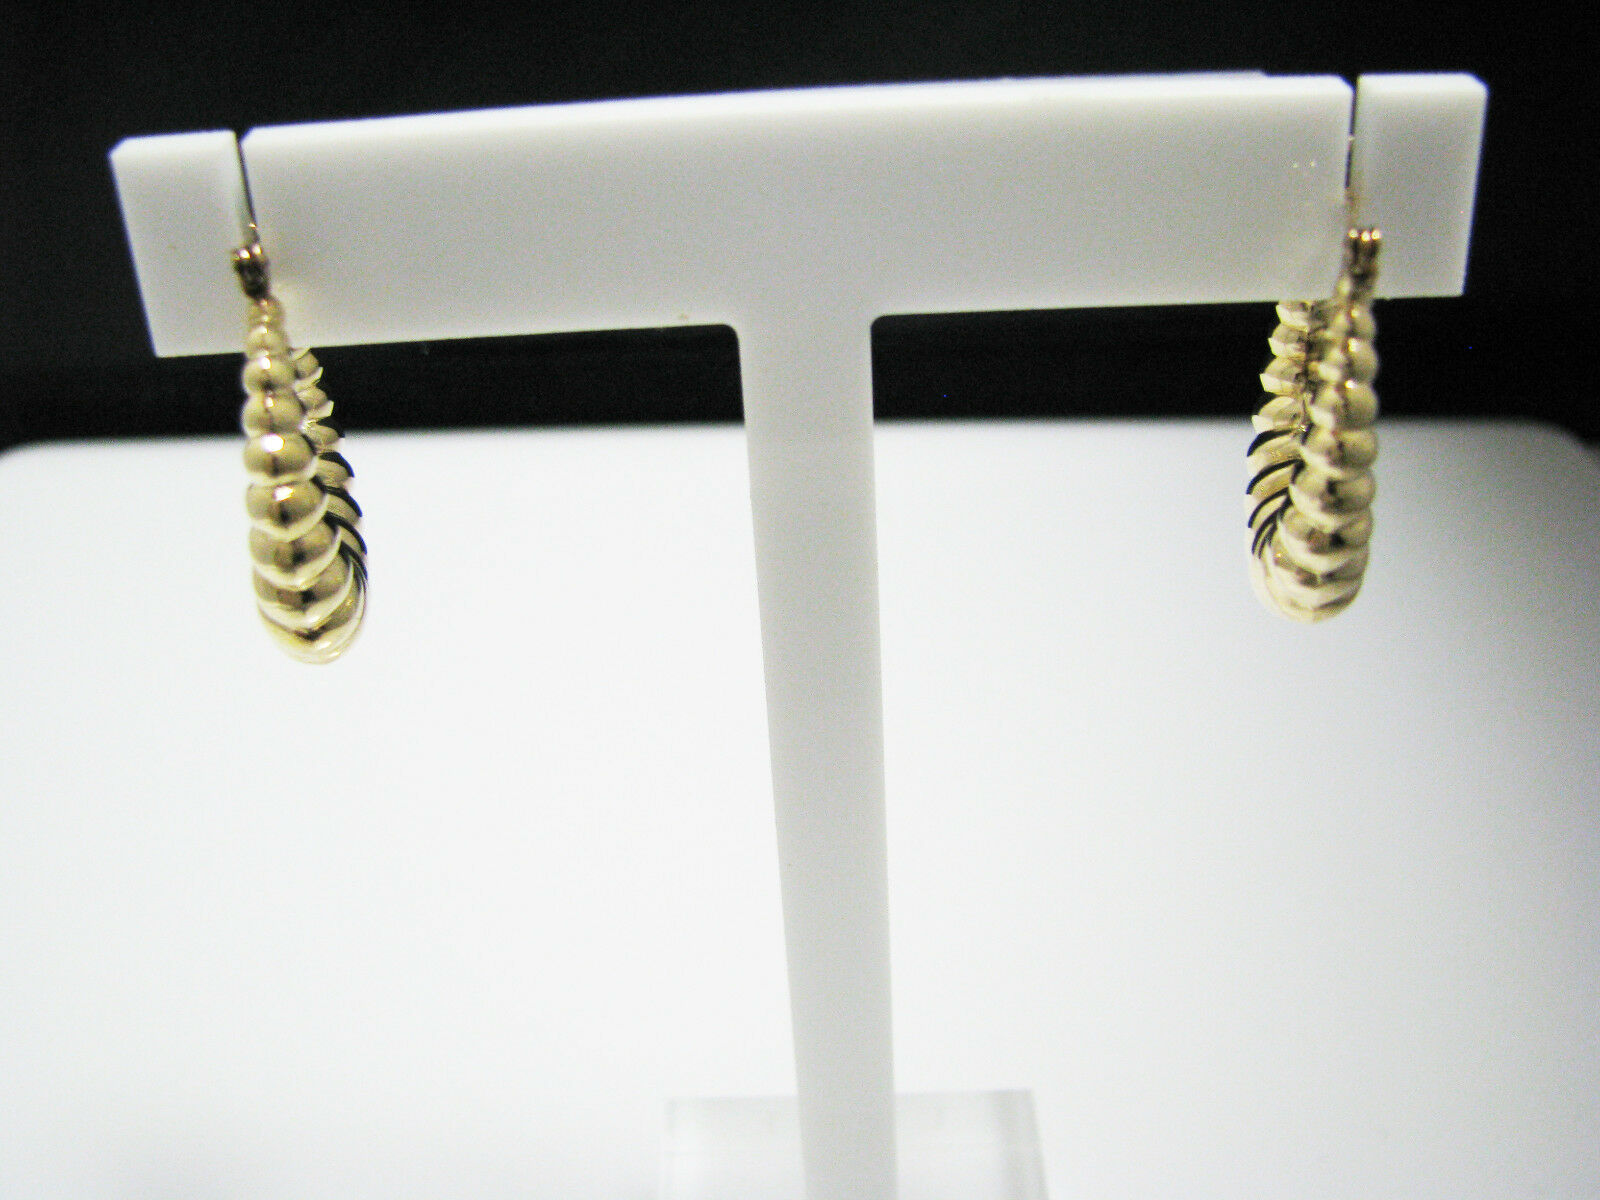 C928 Pretty 14k Yellow gold Hoop Earrings with a Shell Design - Hollow